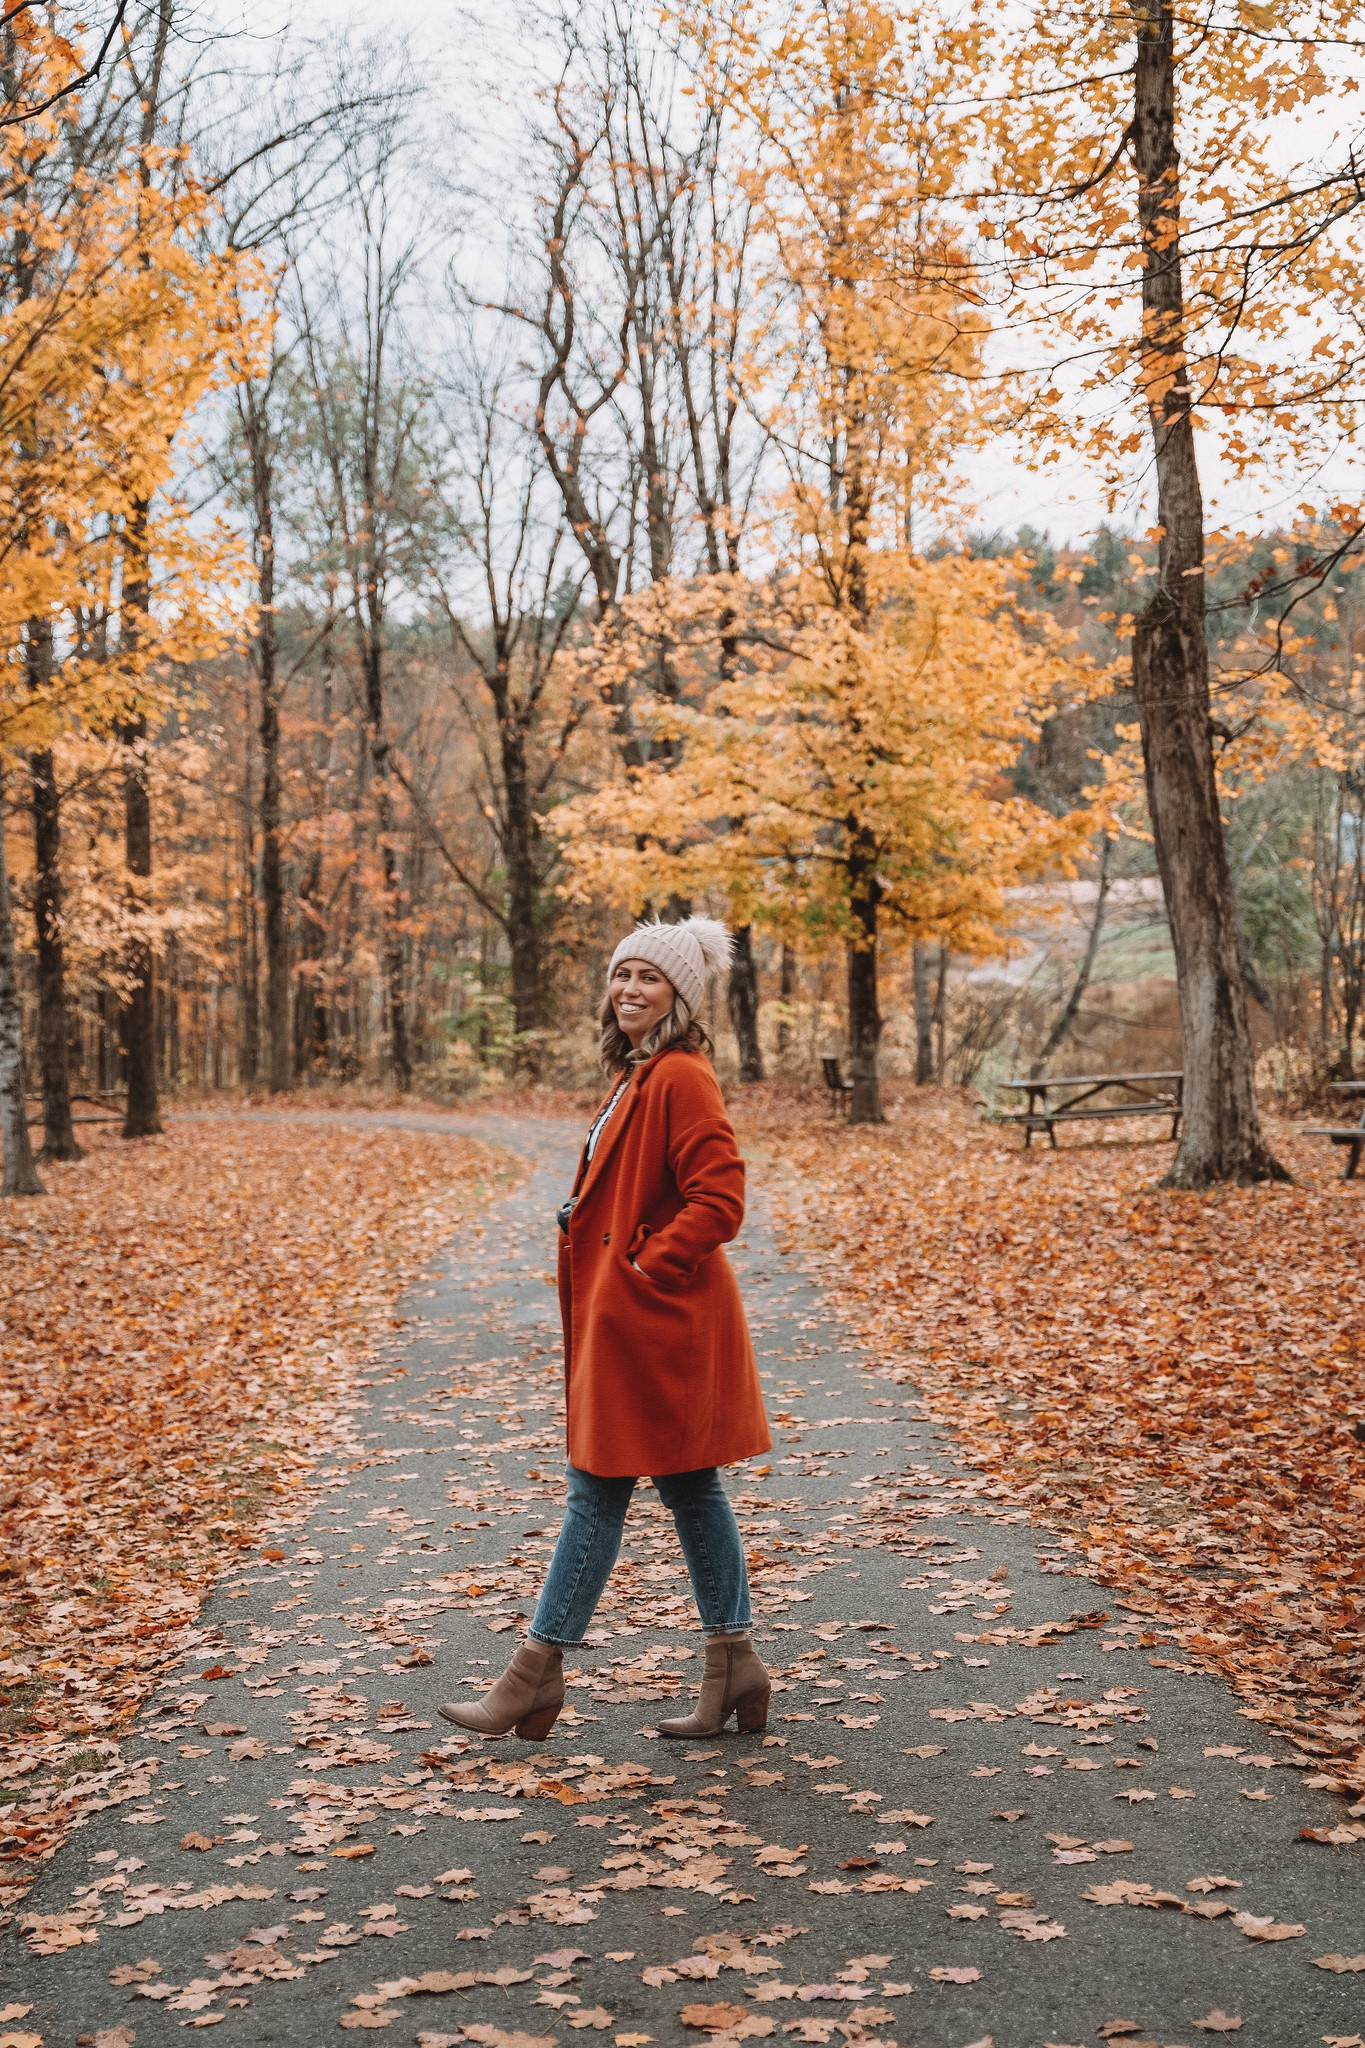 Casual Fall Outfit Inspiration with Orange Coat, Tan Booties and Pom Pom Beanie | Fall Foliage Outfit | What to Wear in Vermont in the Fall | Vermont Packing List for Fall | What to Wear in Vermont in October | What to Wear on a Fall Vacation | Fall Outfits